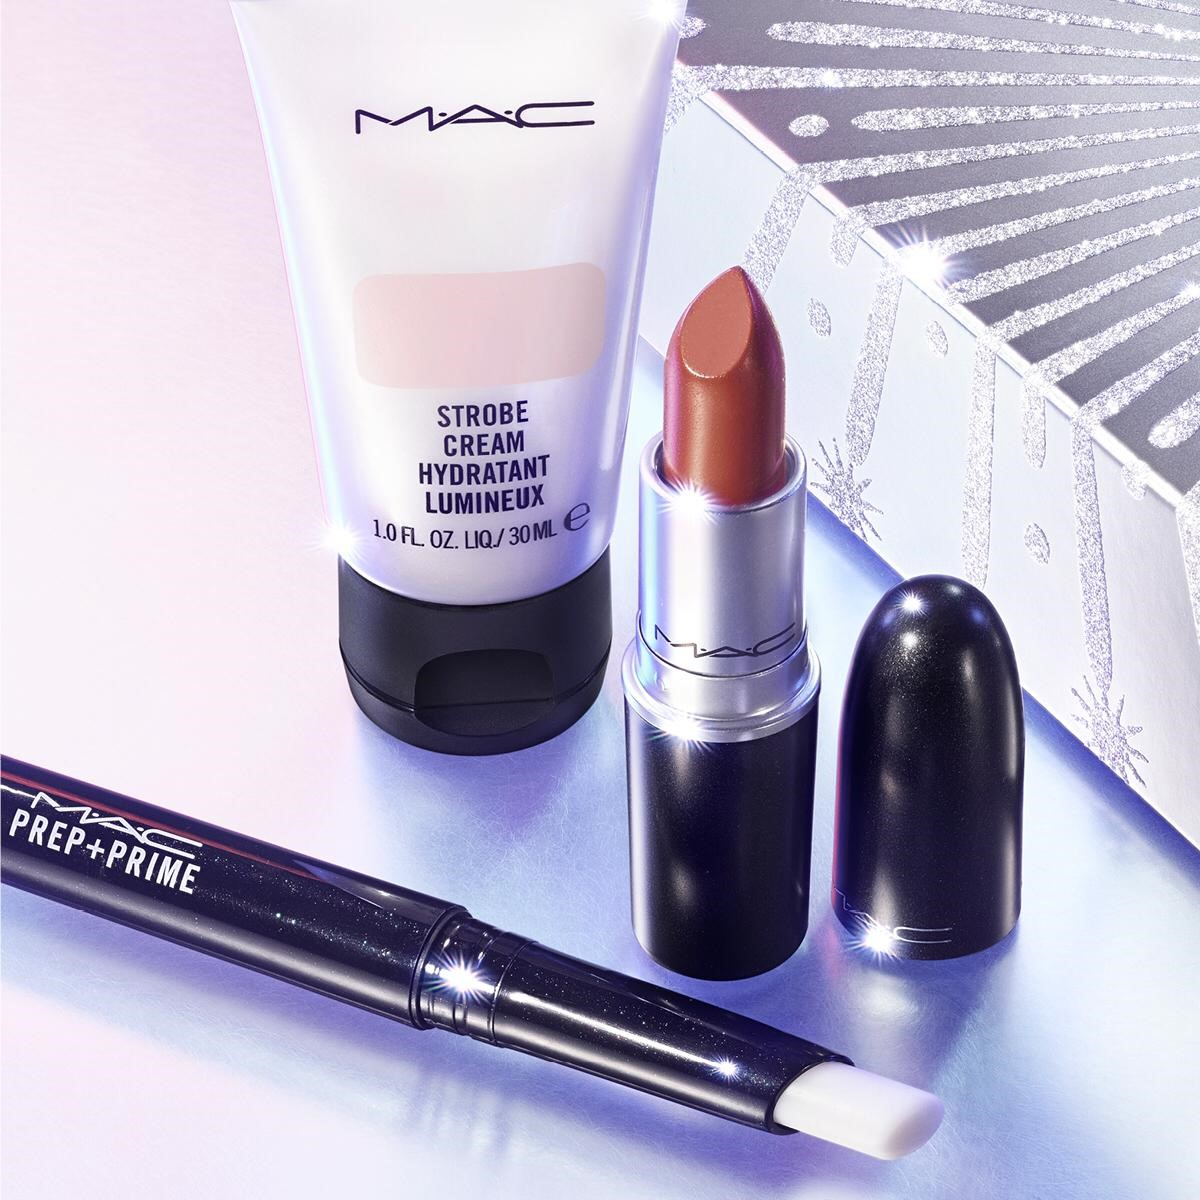 RUN THE SHOW KIT – MOCHA: P+ P LIP, LIPSTICK, MINI STROBE CREAM